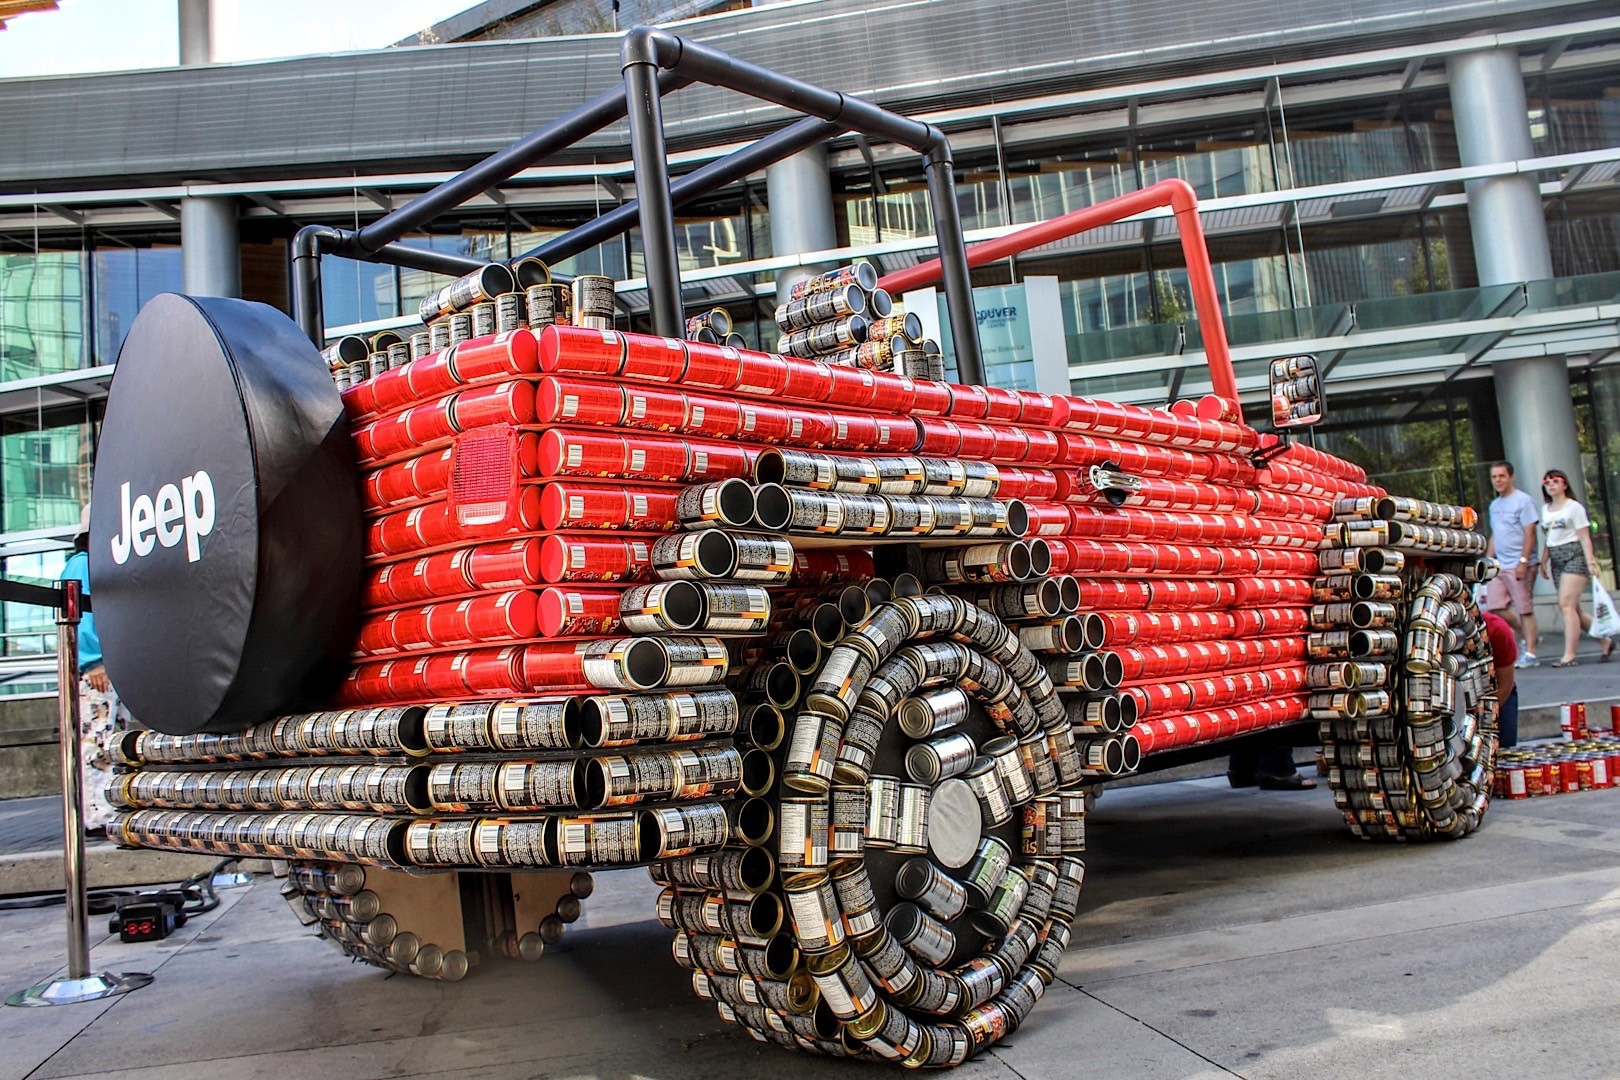 jeep wrangler cans food tin canstruction ride looks man equal applaud idea renegade tomato unique creative build jk forum canada